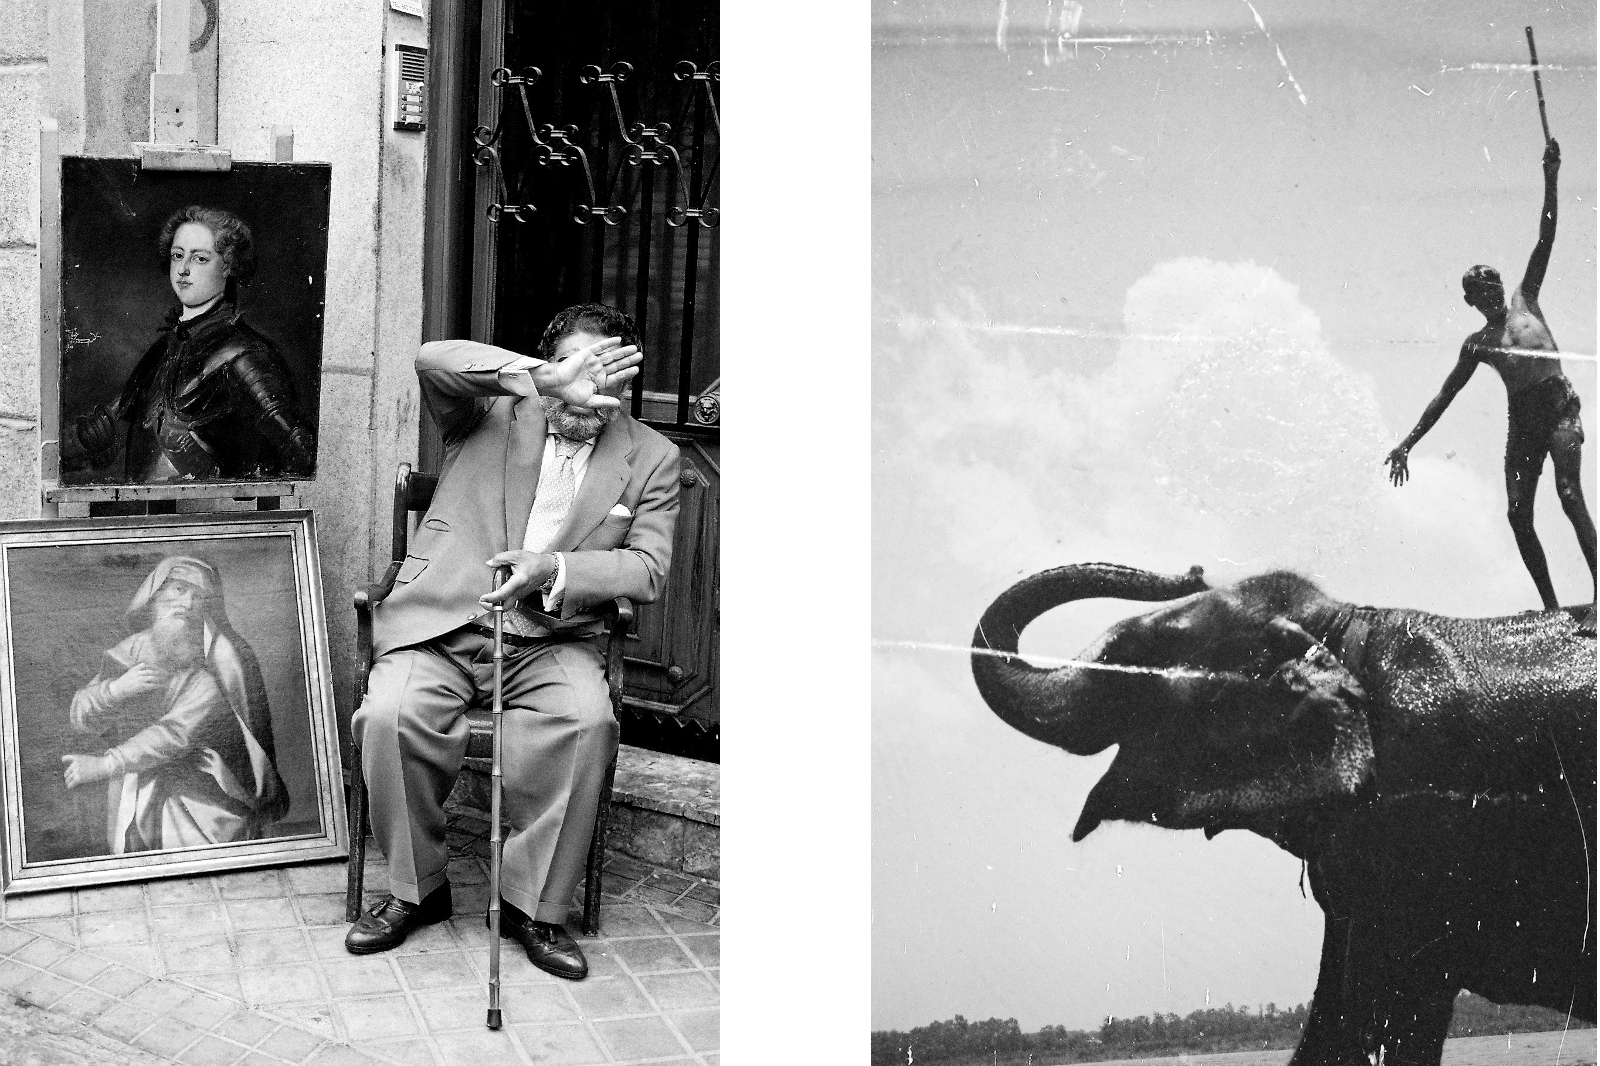 A man selling portraits in Madrid and a damaged negative from Nepal